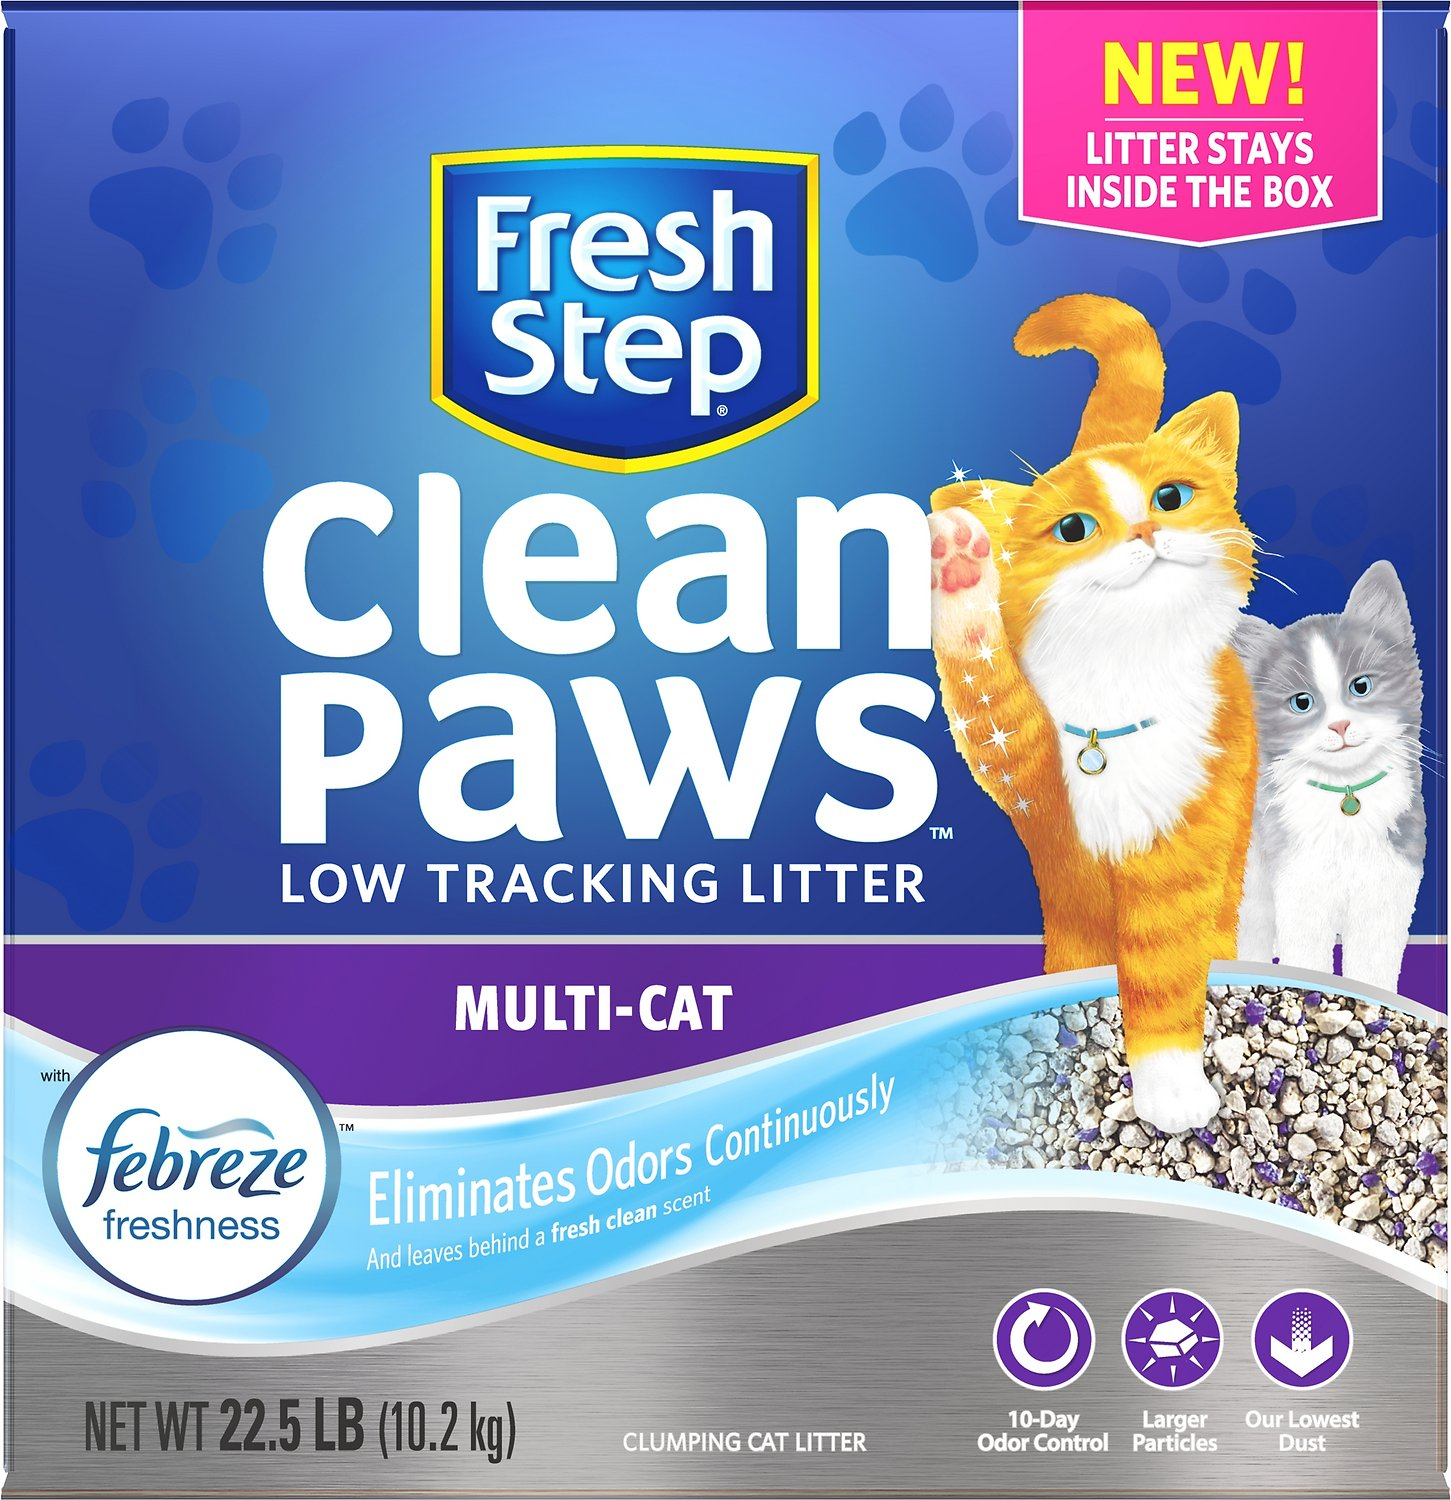 Fresh Step Clean Paws Multi-Cat Low Tracking Cat Litter Image